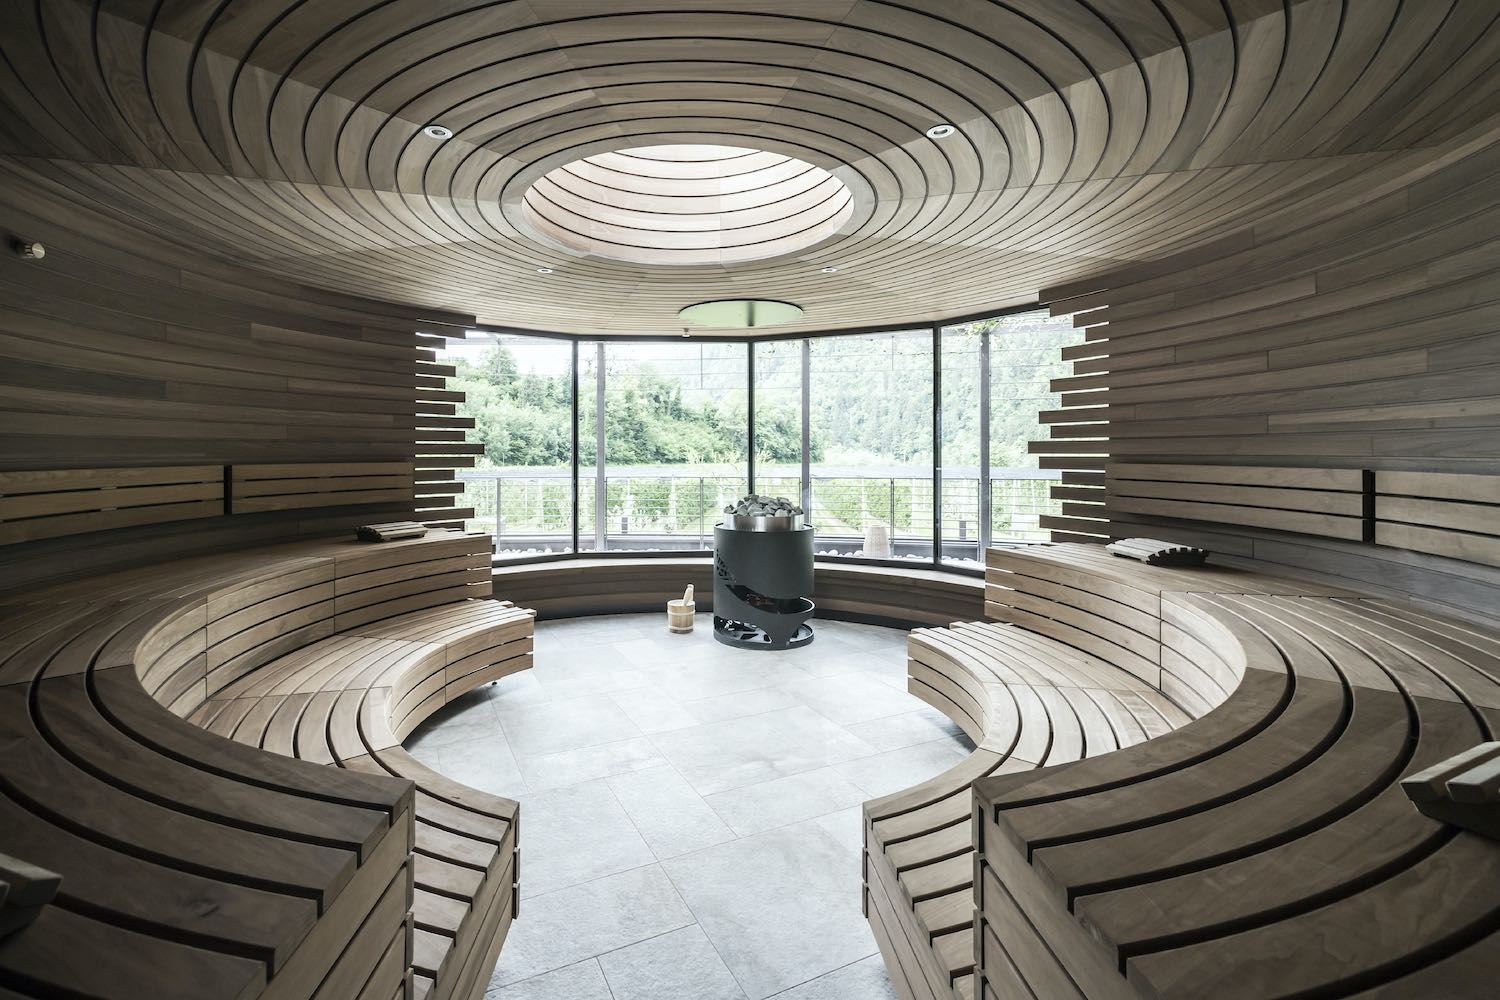 wellness room in circular shape with wooden benches